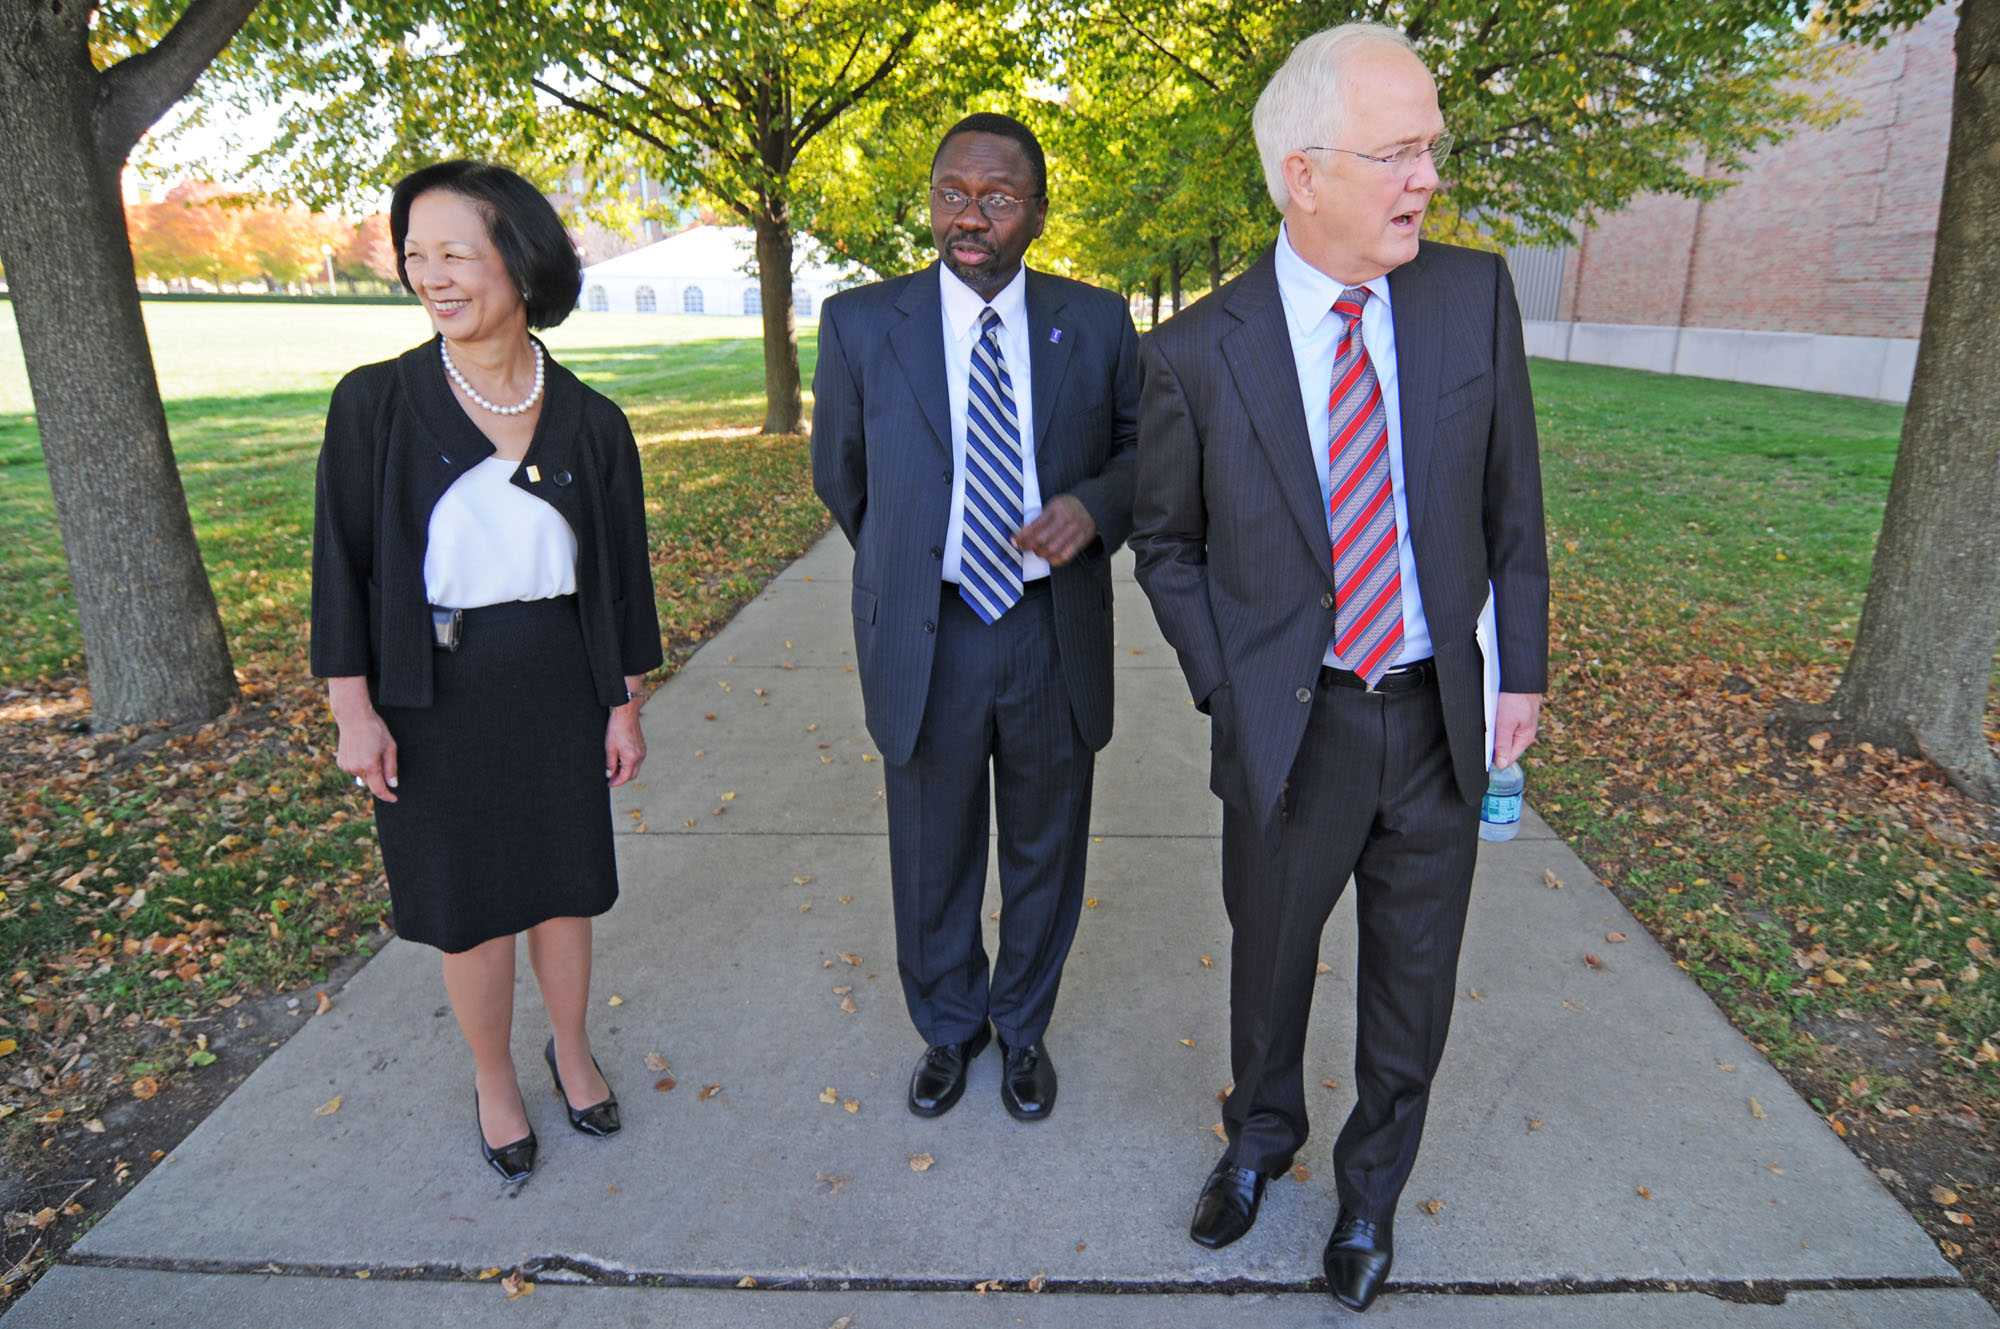 From left to right, Phyllis Wise, UI Chancellor, Ilesanmi Adesida, Dean of the College of Engineering, and Michael Hogan, UI President, wait for governor Pat Quinn's car to arrive before the ground breaking for the new Electrical and Computer Engineering building on Friday, Oct. 7, 2011.